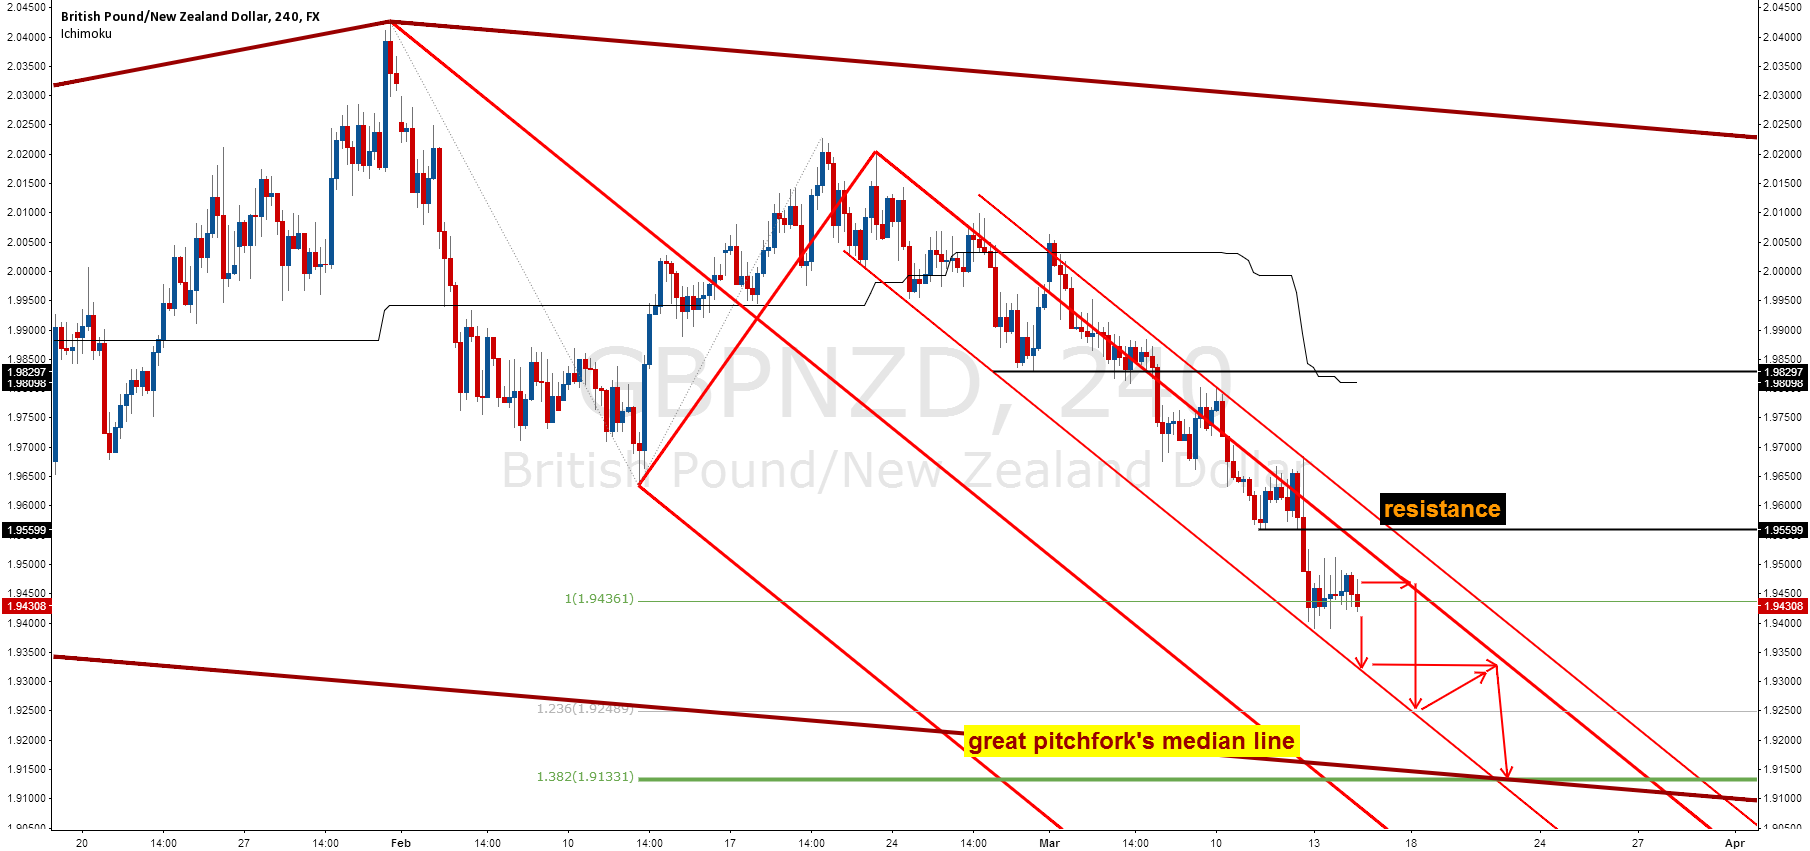 GBPNZD Heading For the Grand Median Line